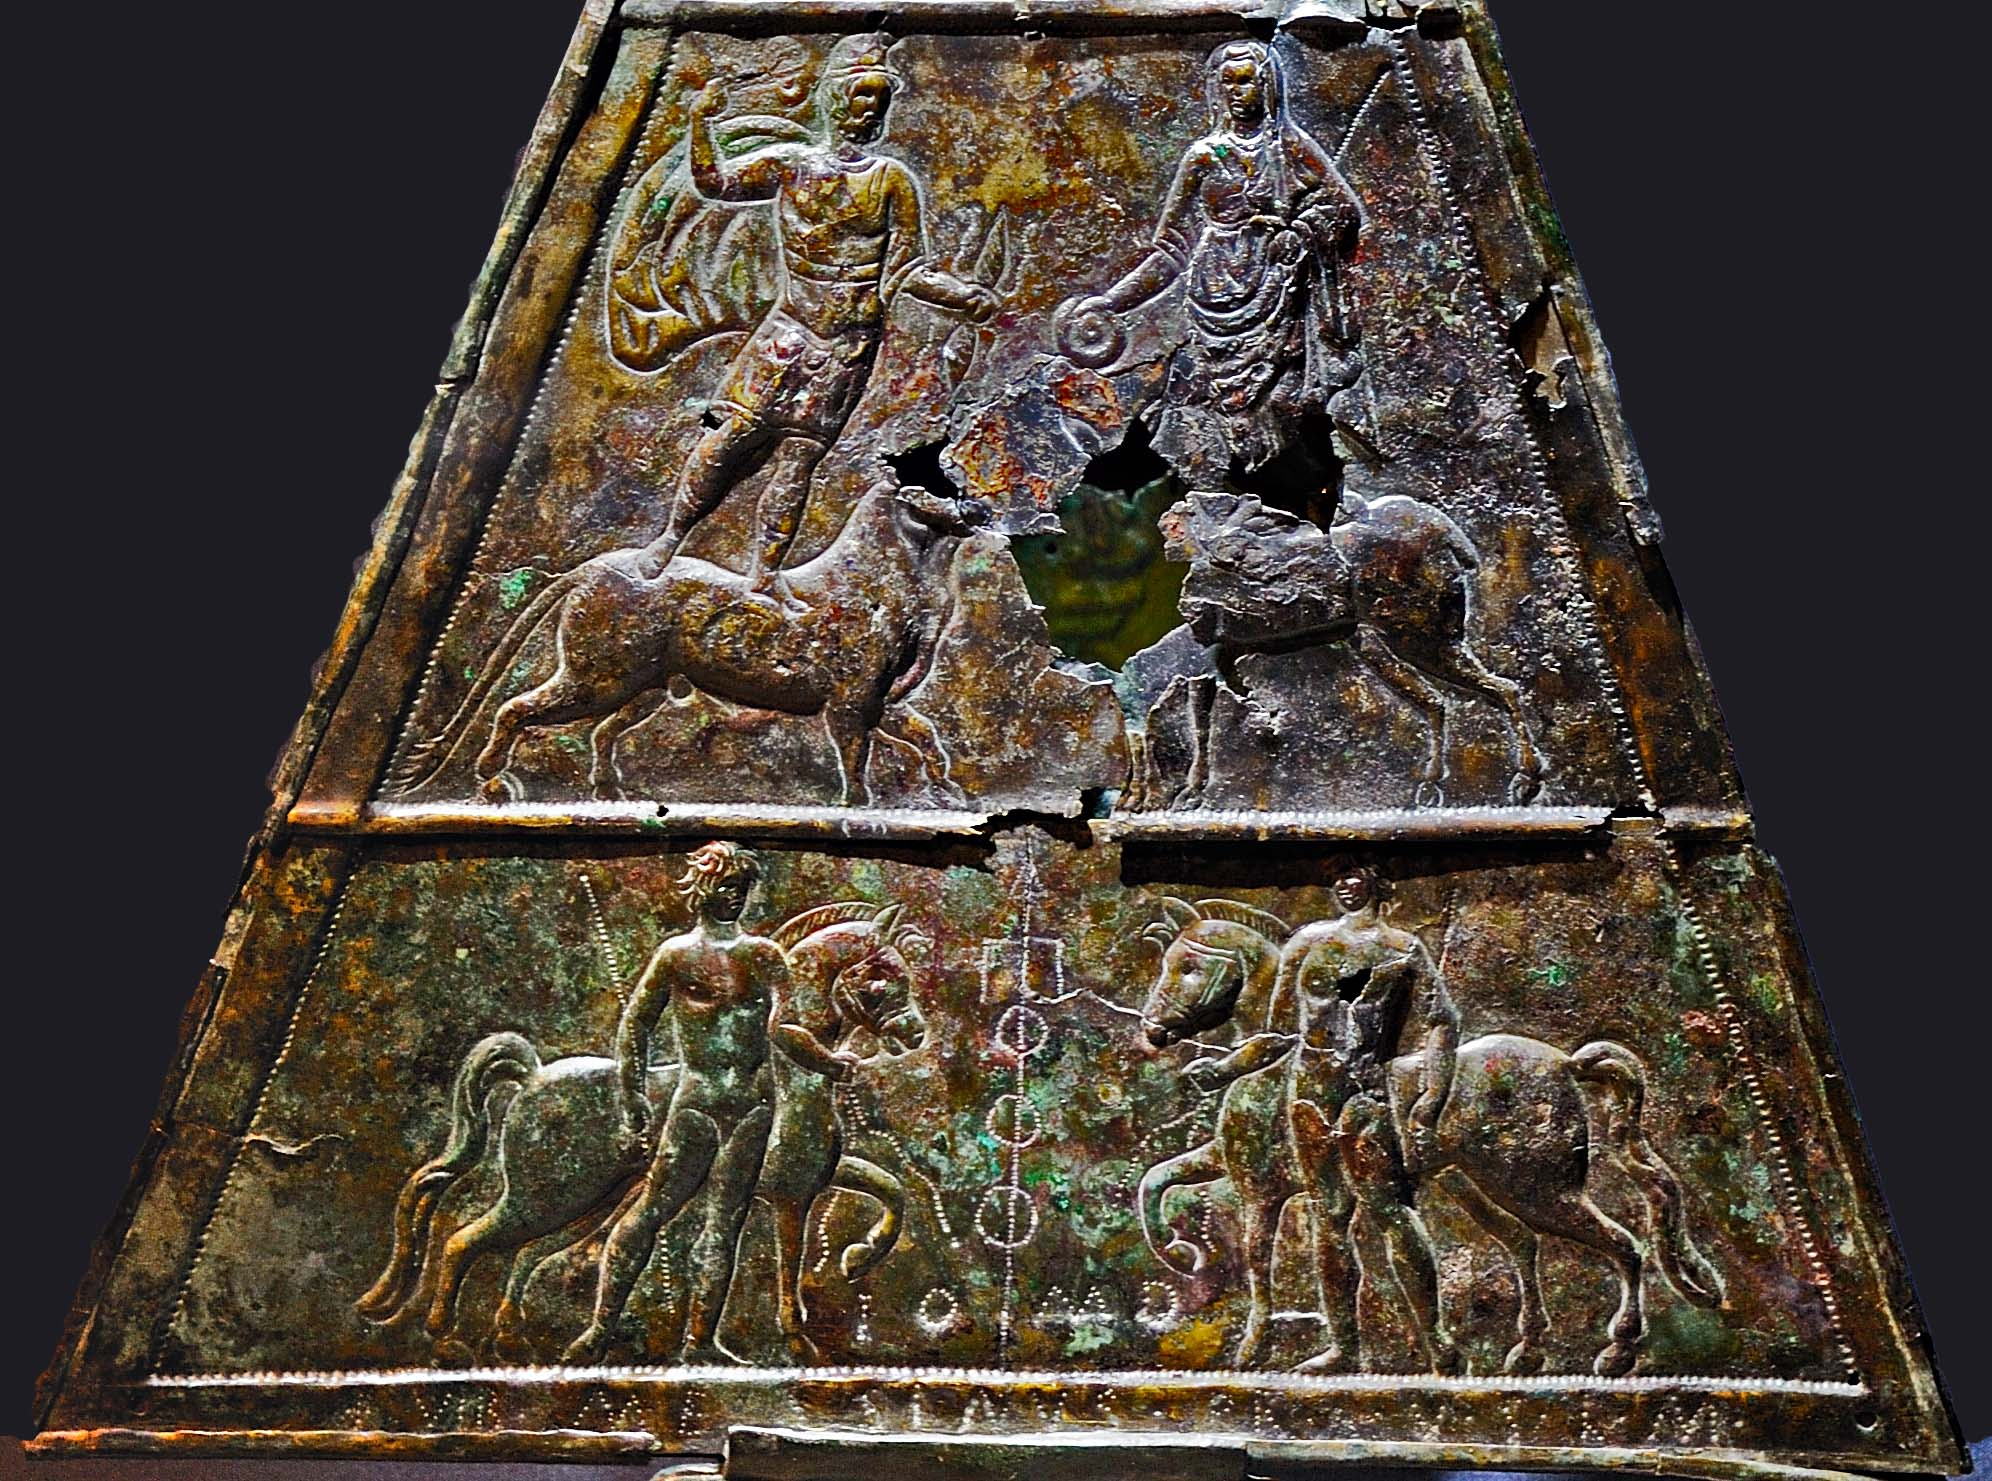 Double-sided triangular votive bronze tablet dedicated to Jupiter Dolichenus (inscription, 1st and 2nd registers). Bronze, chasing. Inv. No. M4. Vienna, Museum of Art History